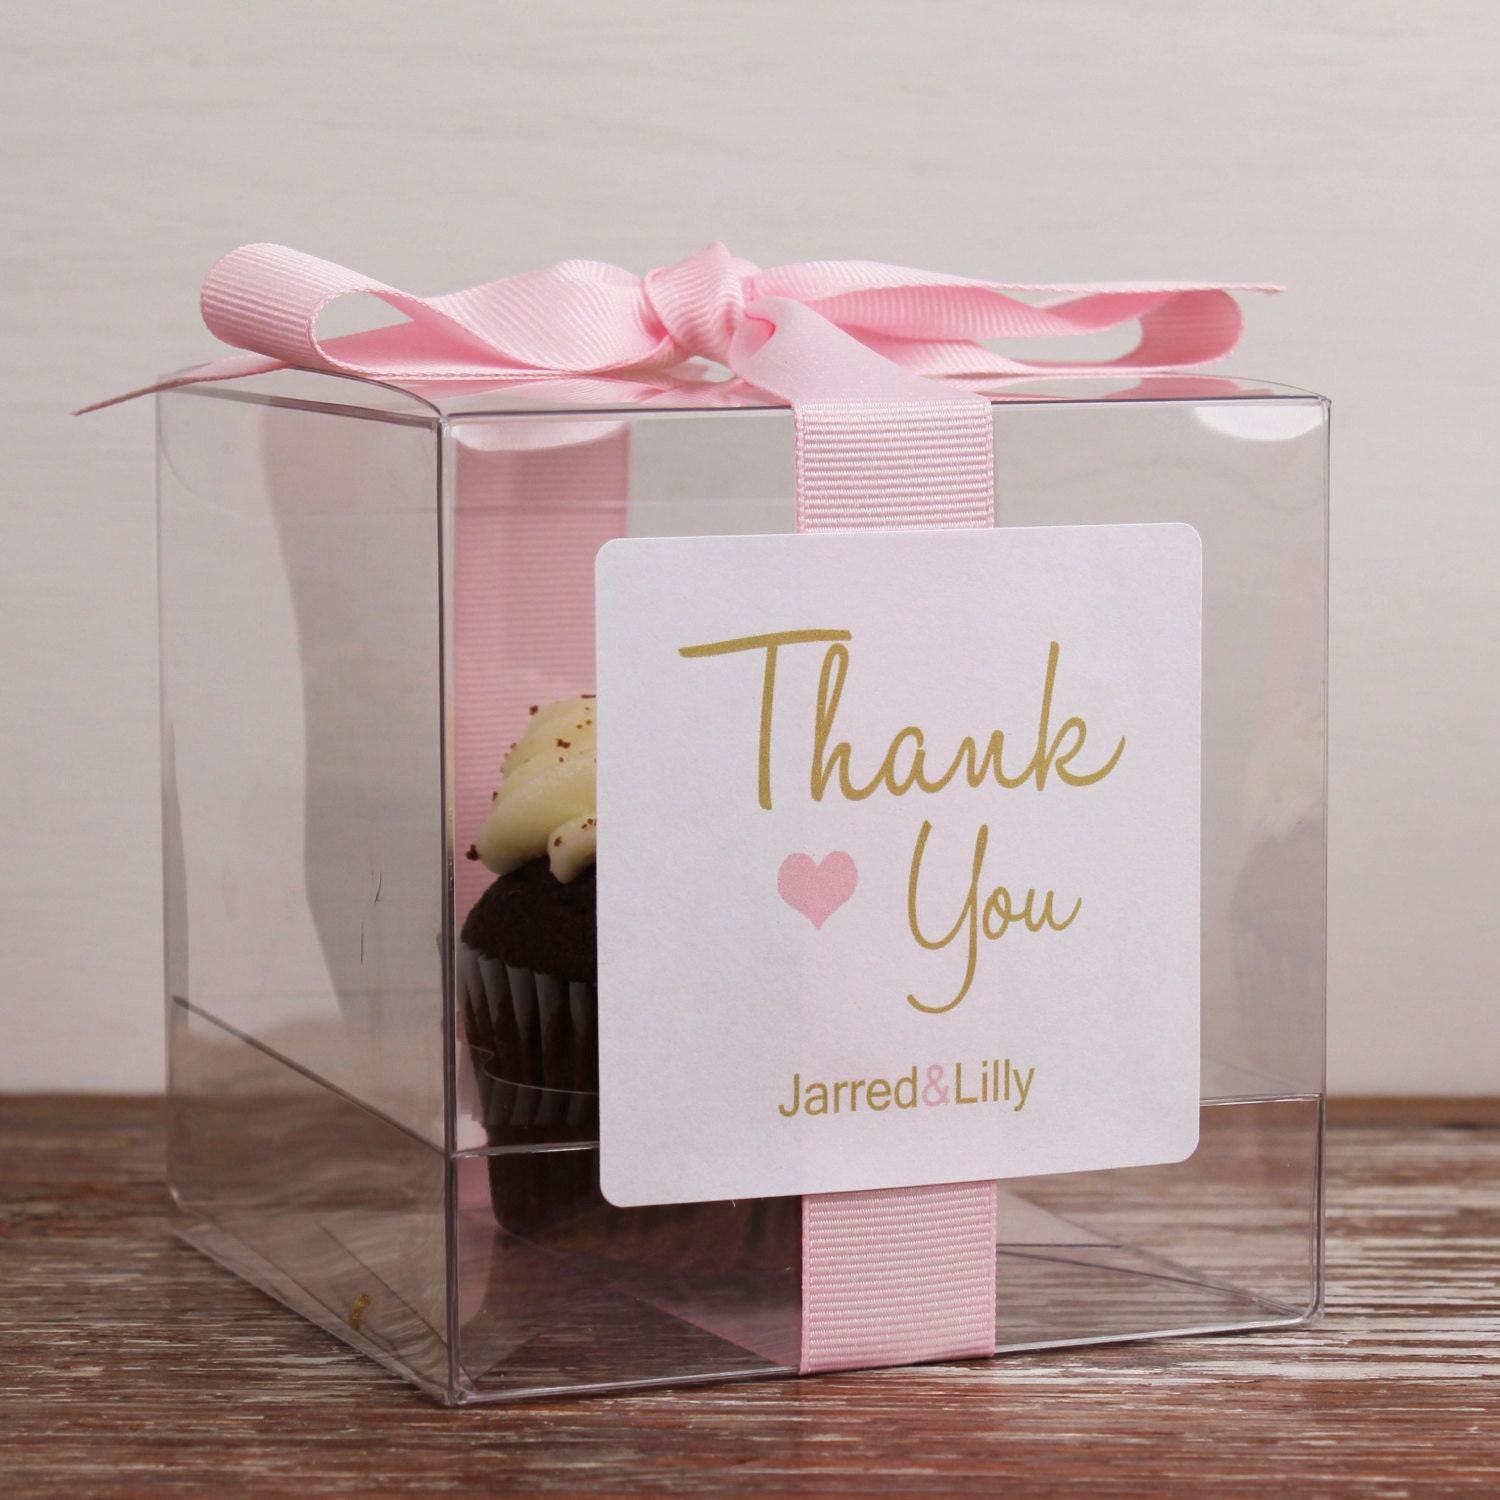 8 Wedding Favor Cupcake Boxes Thank You Design Any Etsy